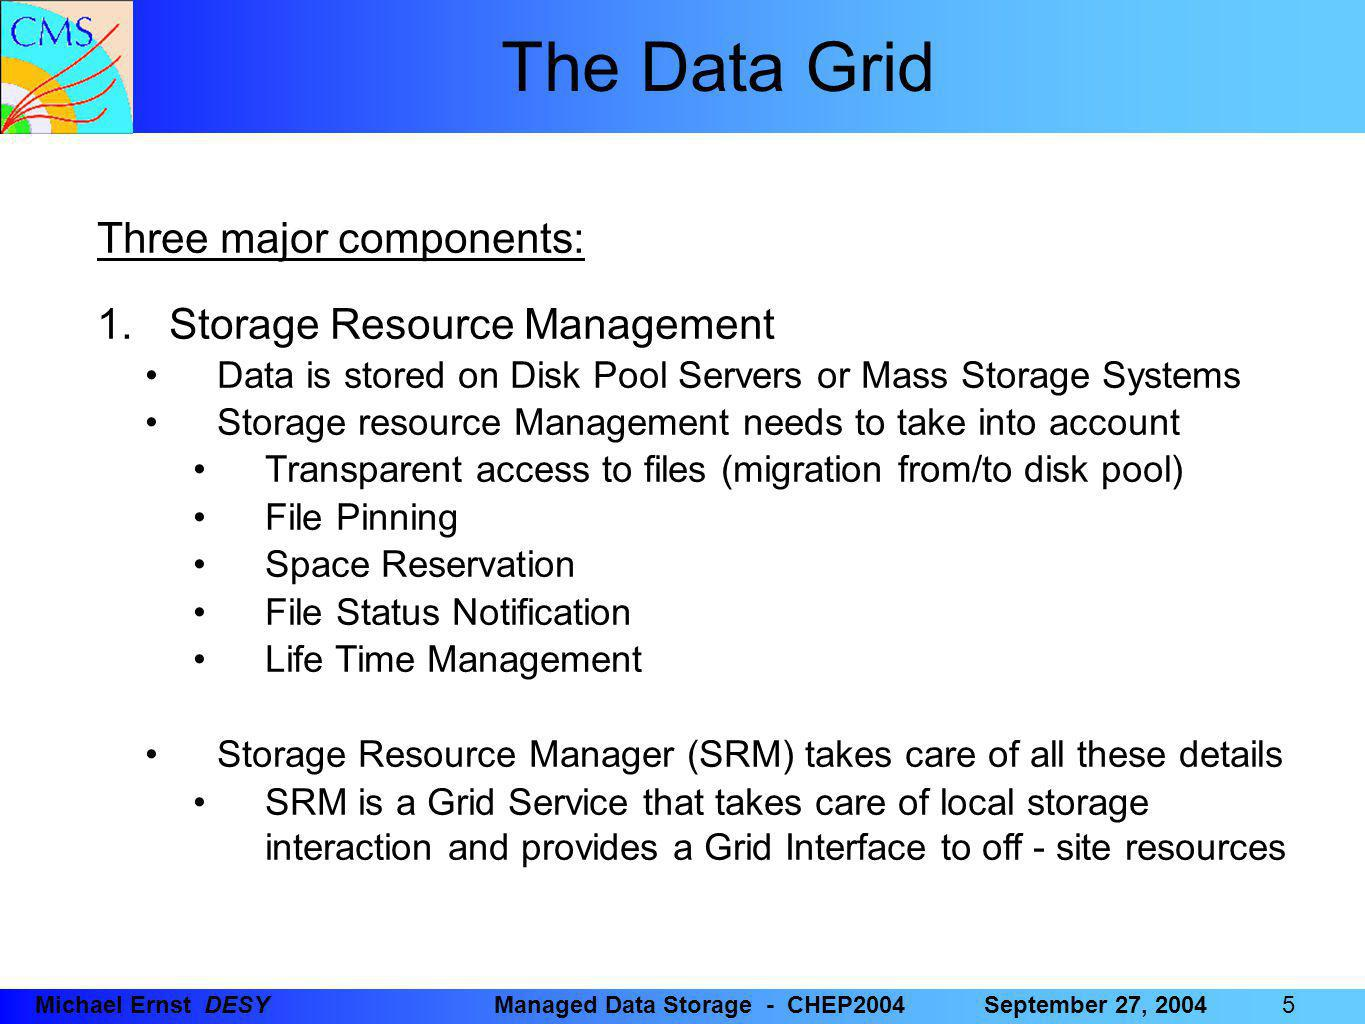 66 6Michael Ernst DESYManaged Data Storage - CHEP2004September 27, 2004 The Data Grid Three major components: 1.Storage Resource Management (cont'd) Support for local policy Each Storage Resource can be managed independently Internal priorities are not sacrificed by data movements between Grid Agents Disk and Tape resources are presented as a single element Temporary Locking / Pinning Files can be read from disk caches rather than from tape Reservation on demand and advance reservation Space can be reserved for registering a new file Plan the storage system usage File Status and Estimates for Planning Provides Information on File Status Provides Information on Space Availability / Usage